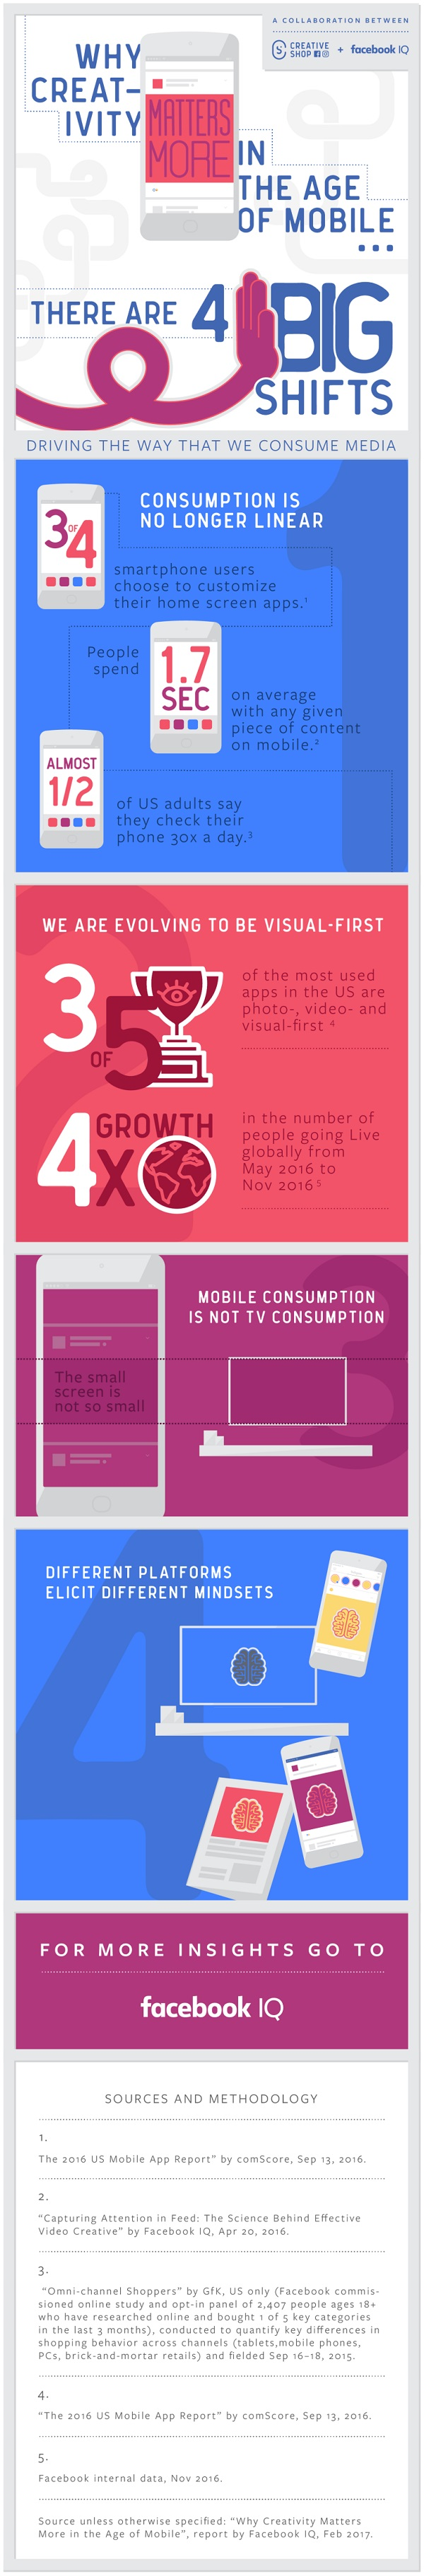 Infographic: Why Creativity Matters More in the Age of Mobile